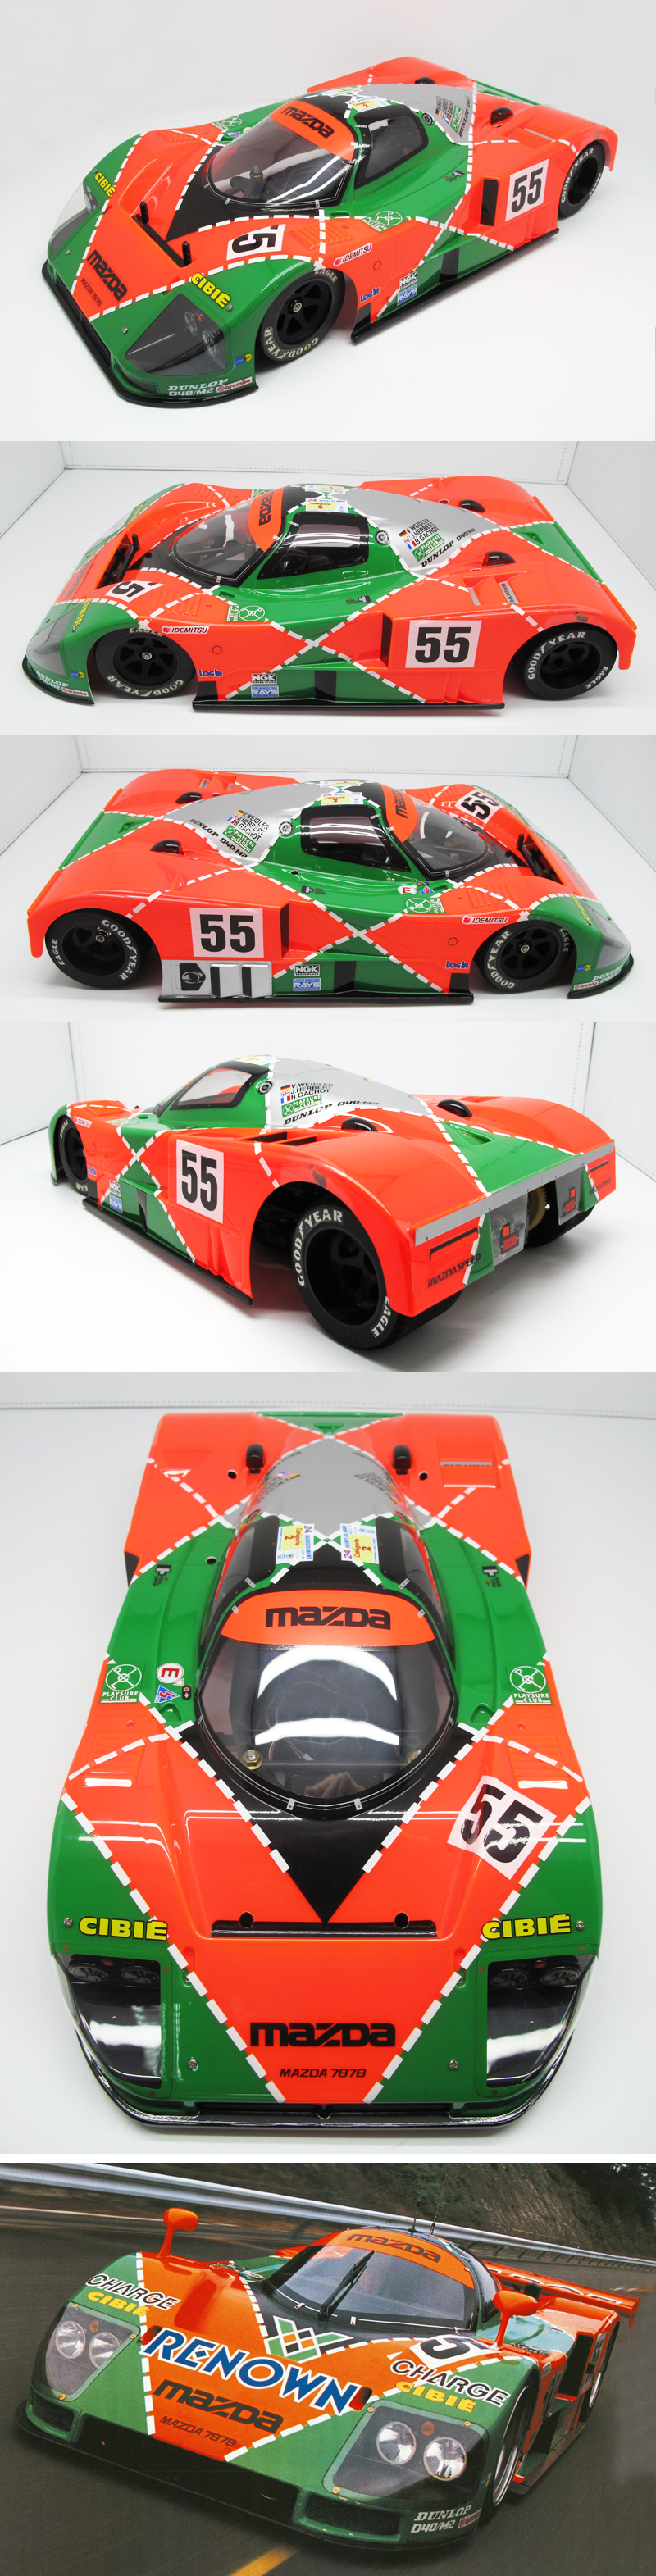 Race Car RENOWN 1:10 RC Clear Lexan Body Shell Mazda 787B Le mans with decals